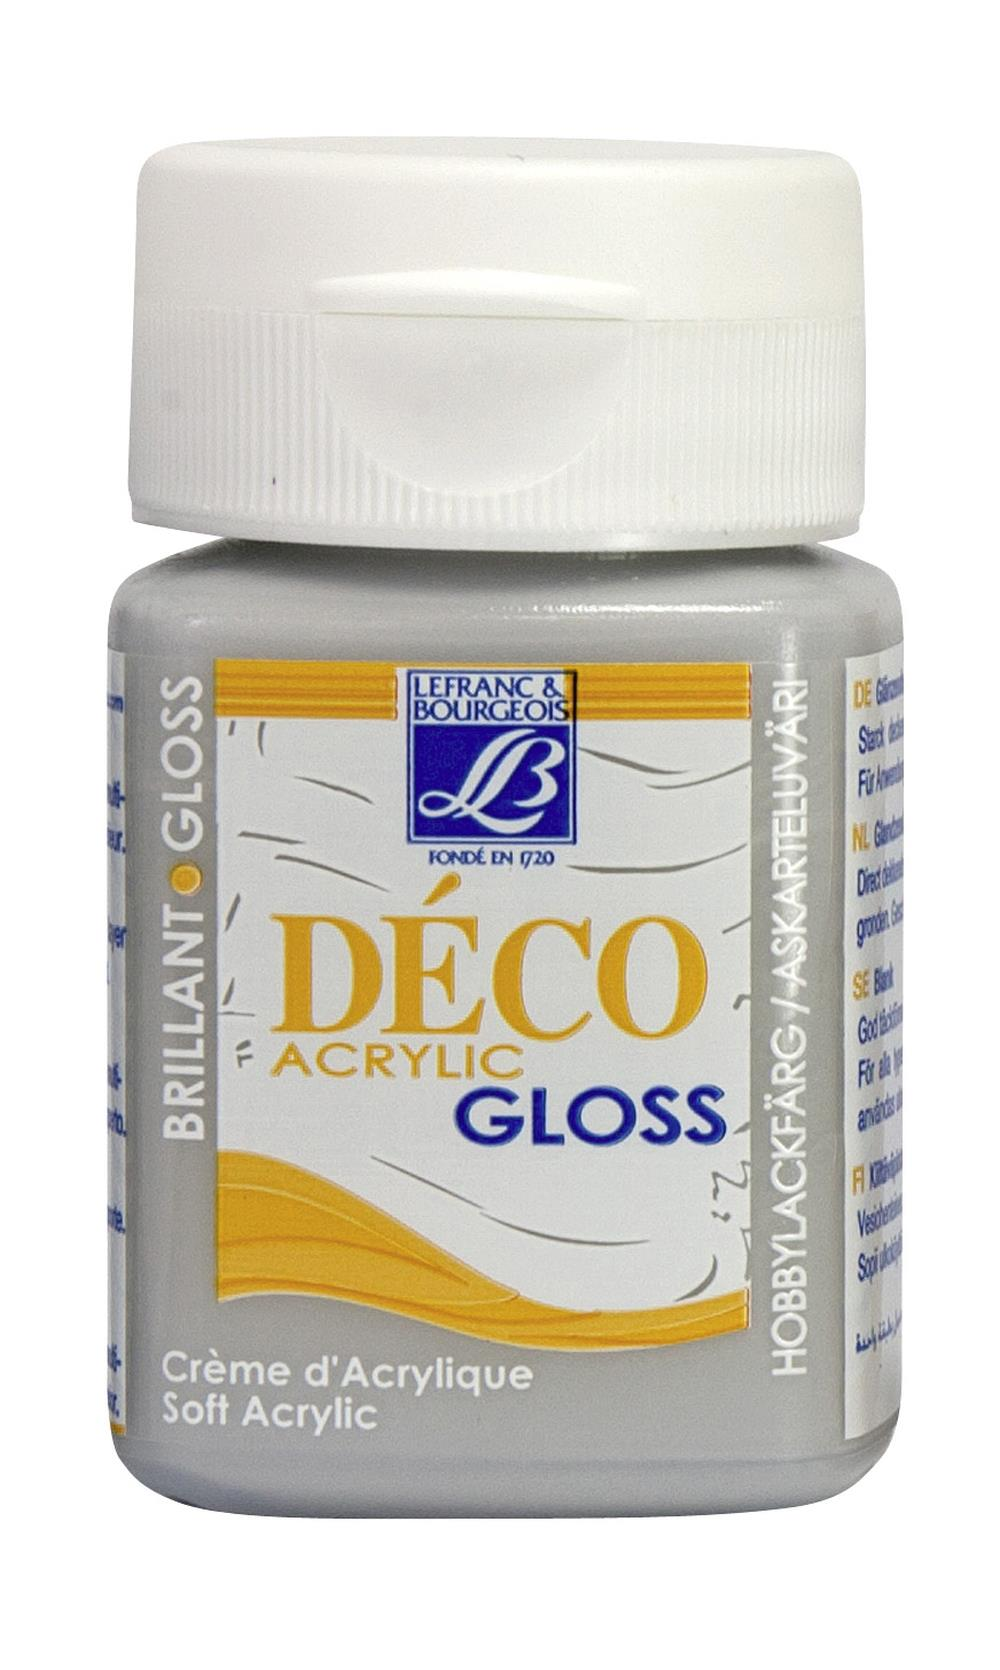 Hobbyfärg L&B Deco Gloss Akryl 50ml  Light Grey 253 (4F) Utgår